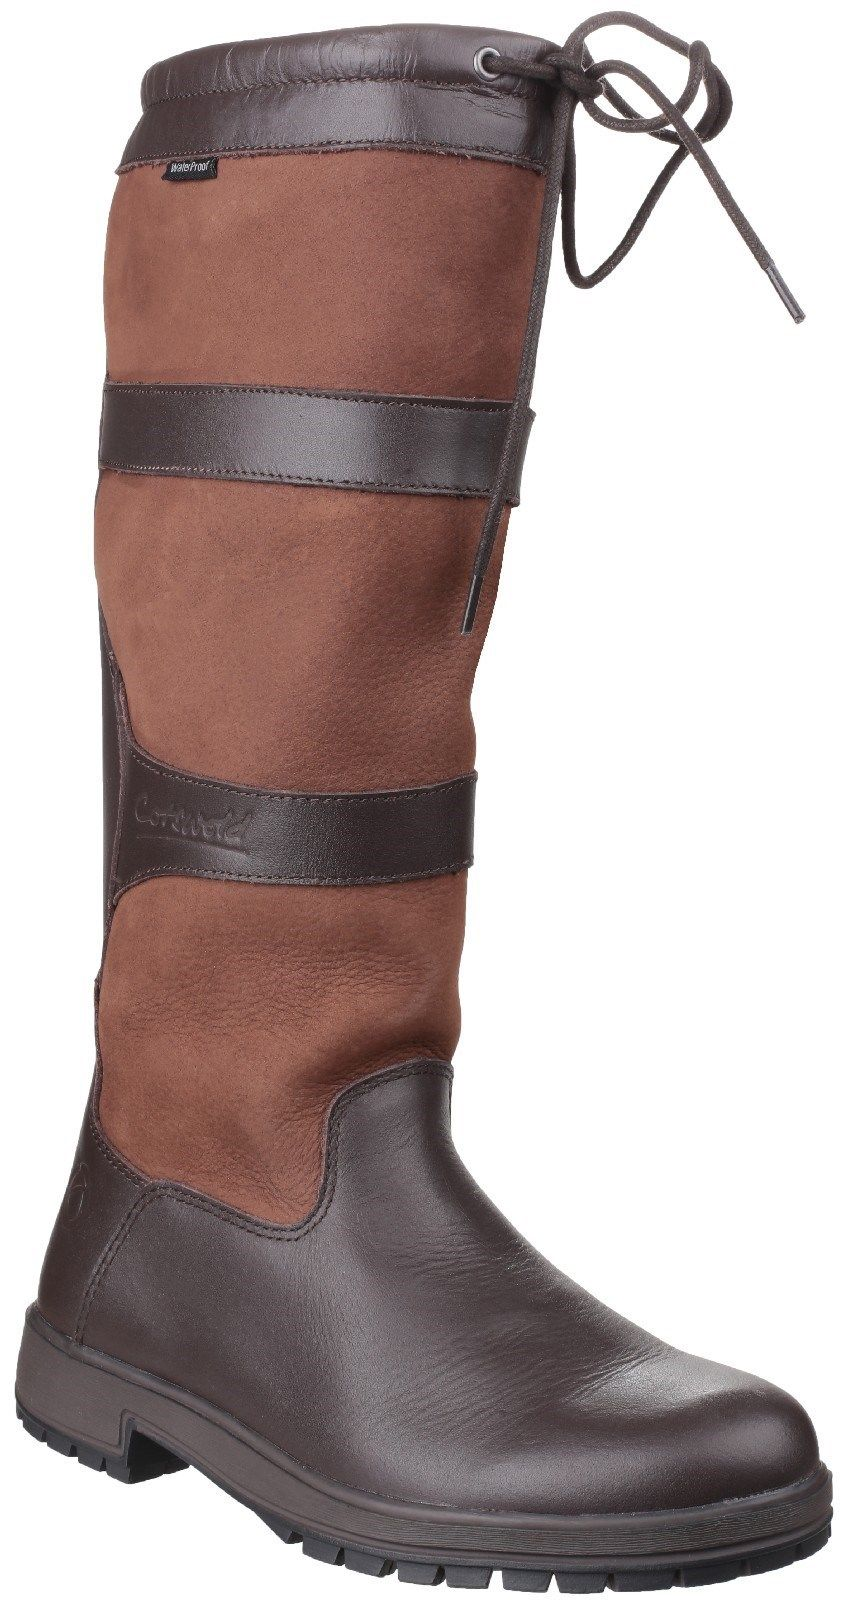 Cotswold Beaumont brown or walnut ladies waterproof pull on high leg boots